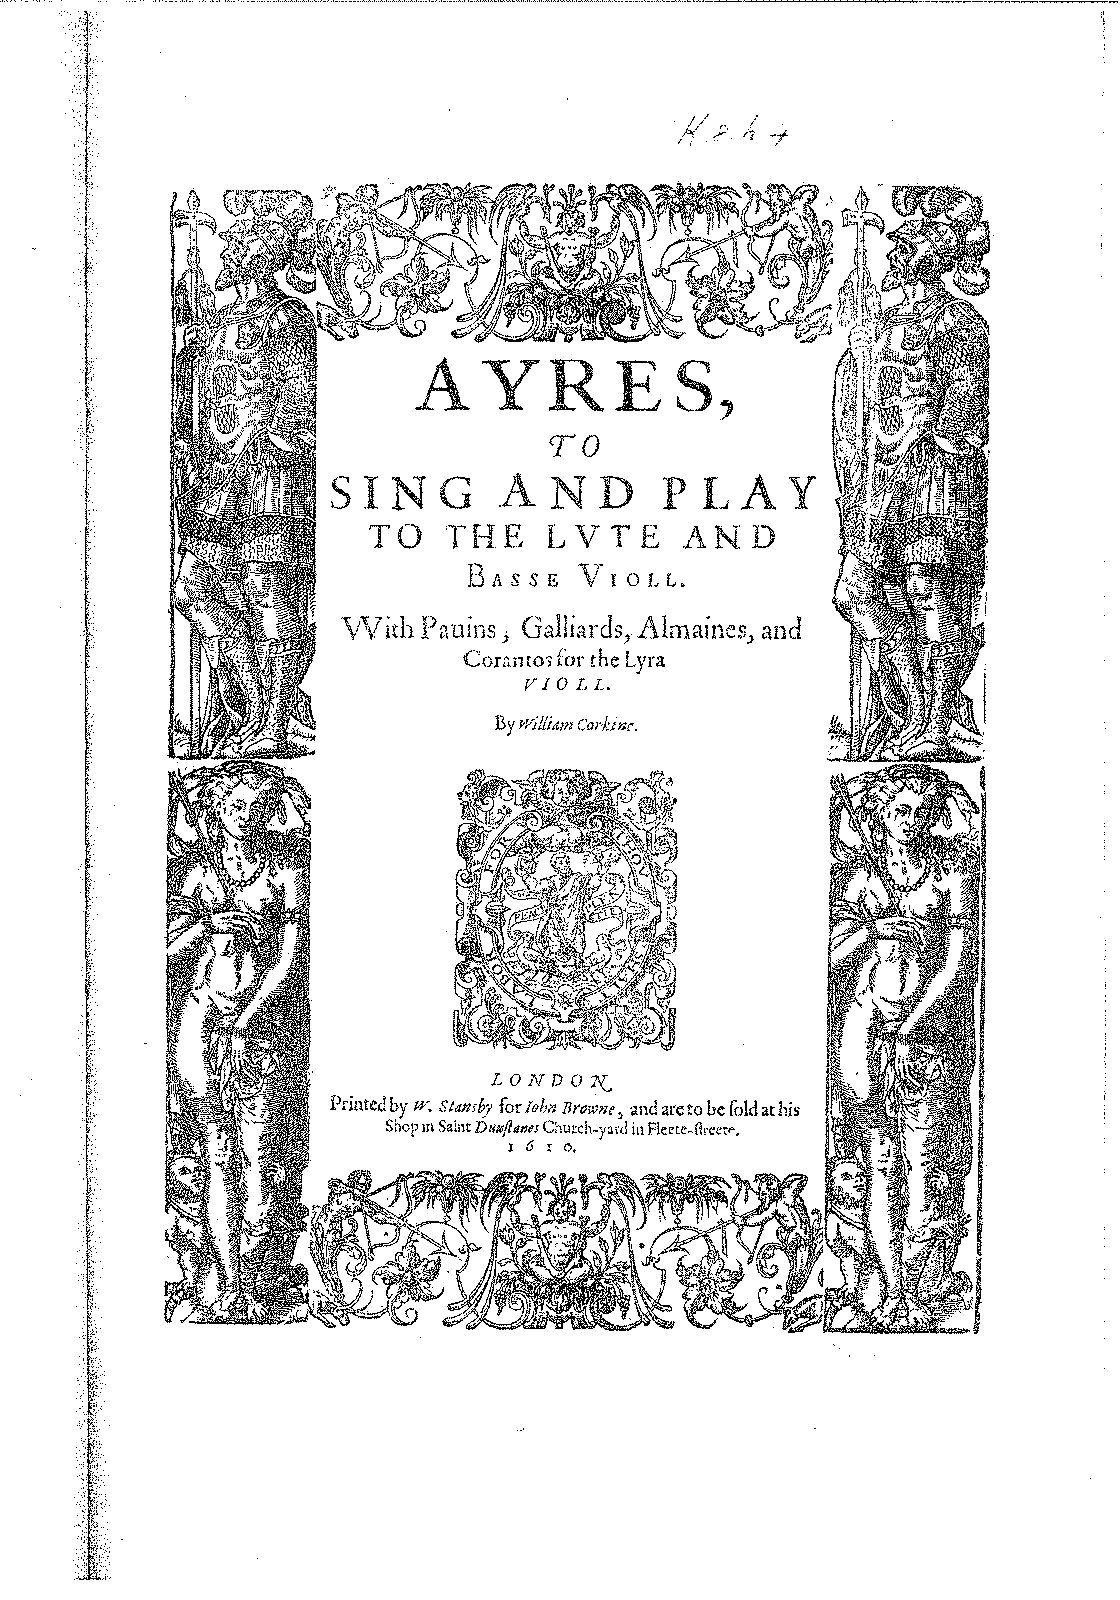 PMLP203015-Ayres to sing and play to the lute and basse violl, with Pauin, Galliards, Almaines, and Corantos for the Lyra violl (ed. W. Sansby, I. Browne, London, 1610).pdf